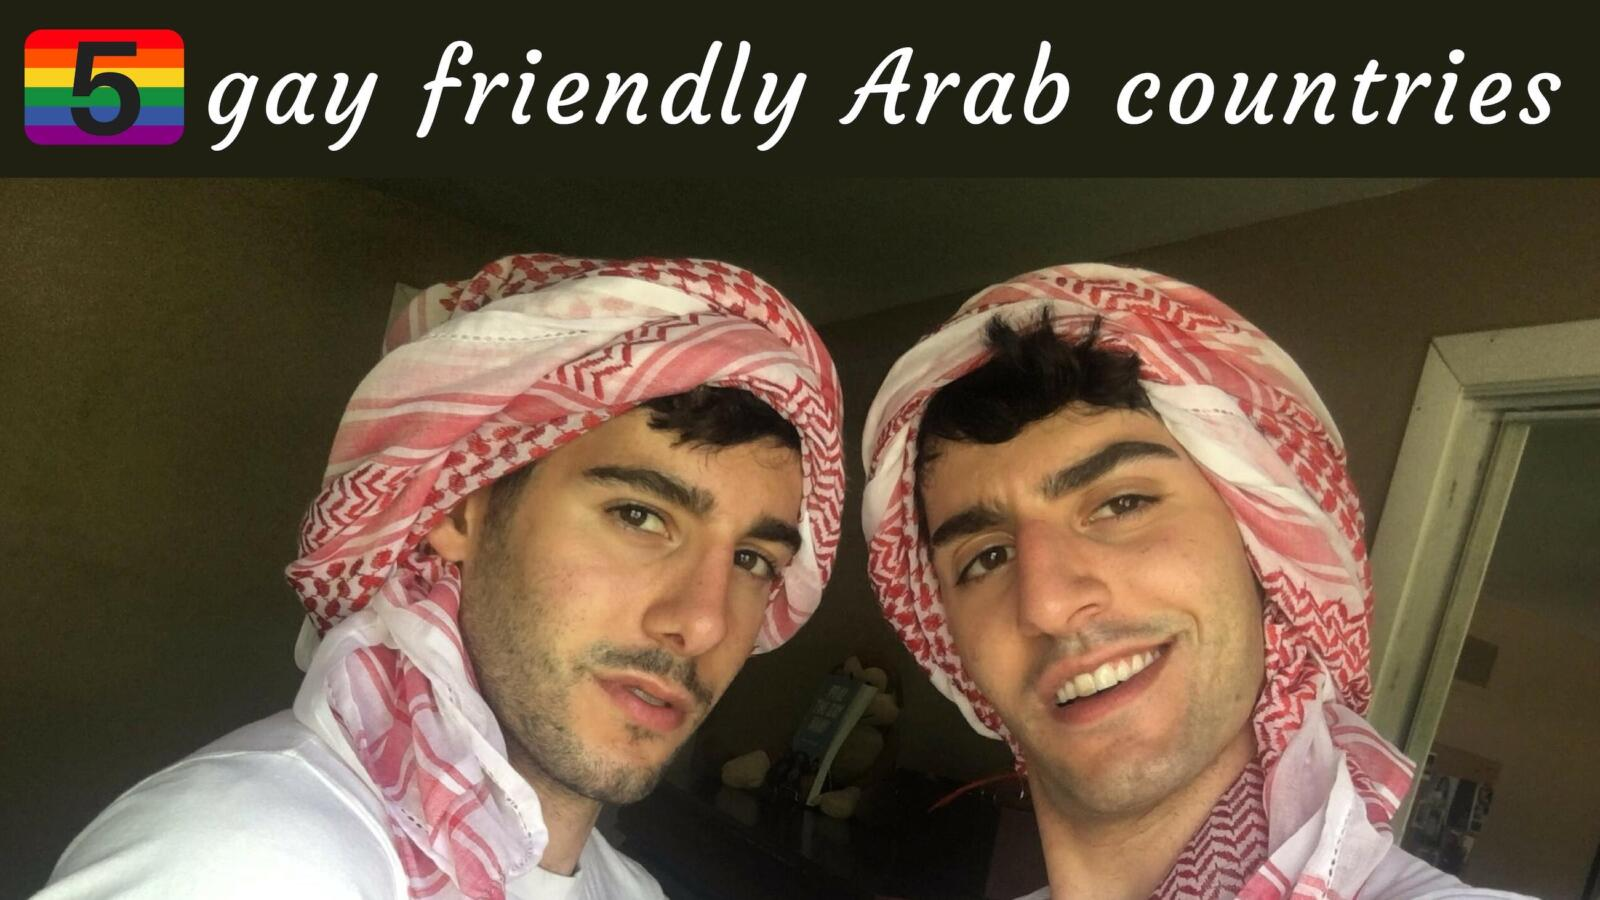 Gay friendly Arab countries